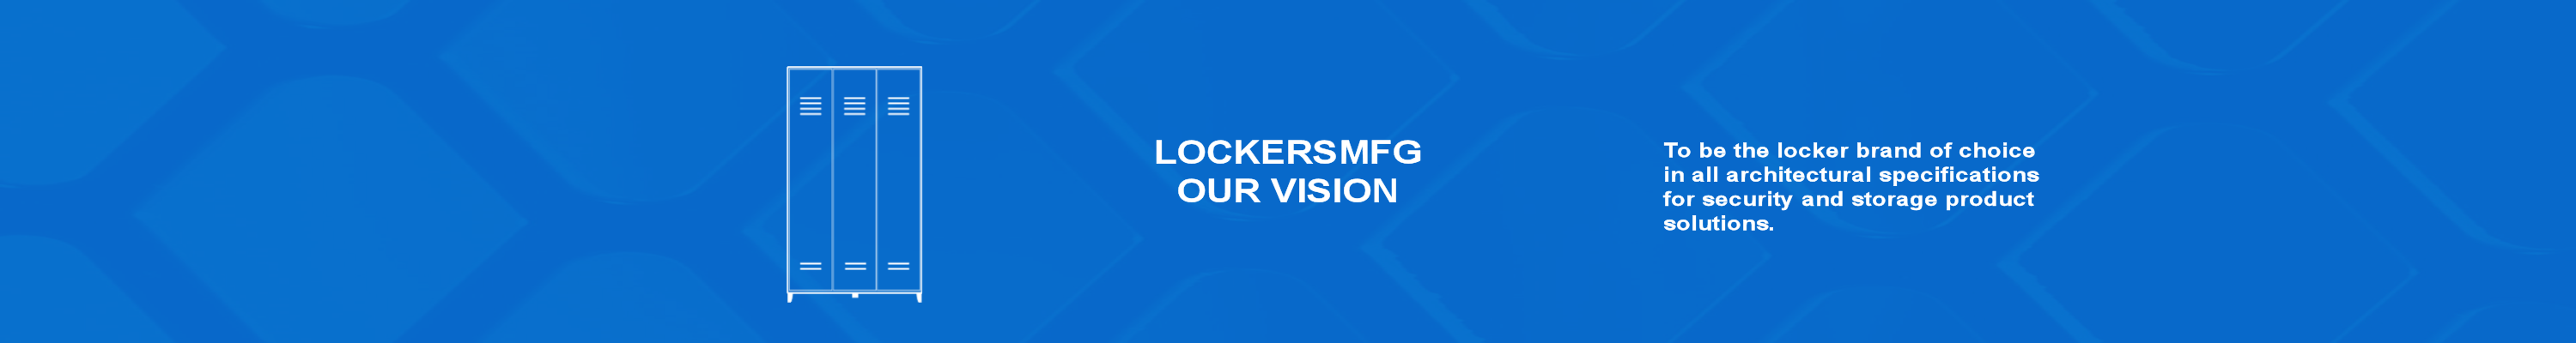 LockersMFG Vision Diamond Background